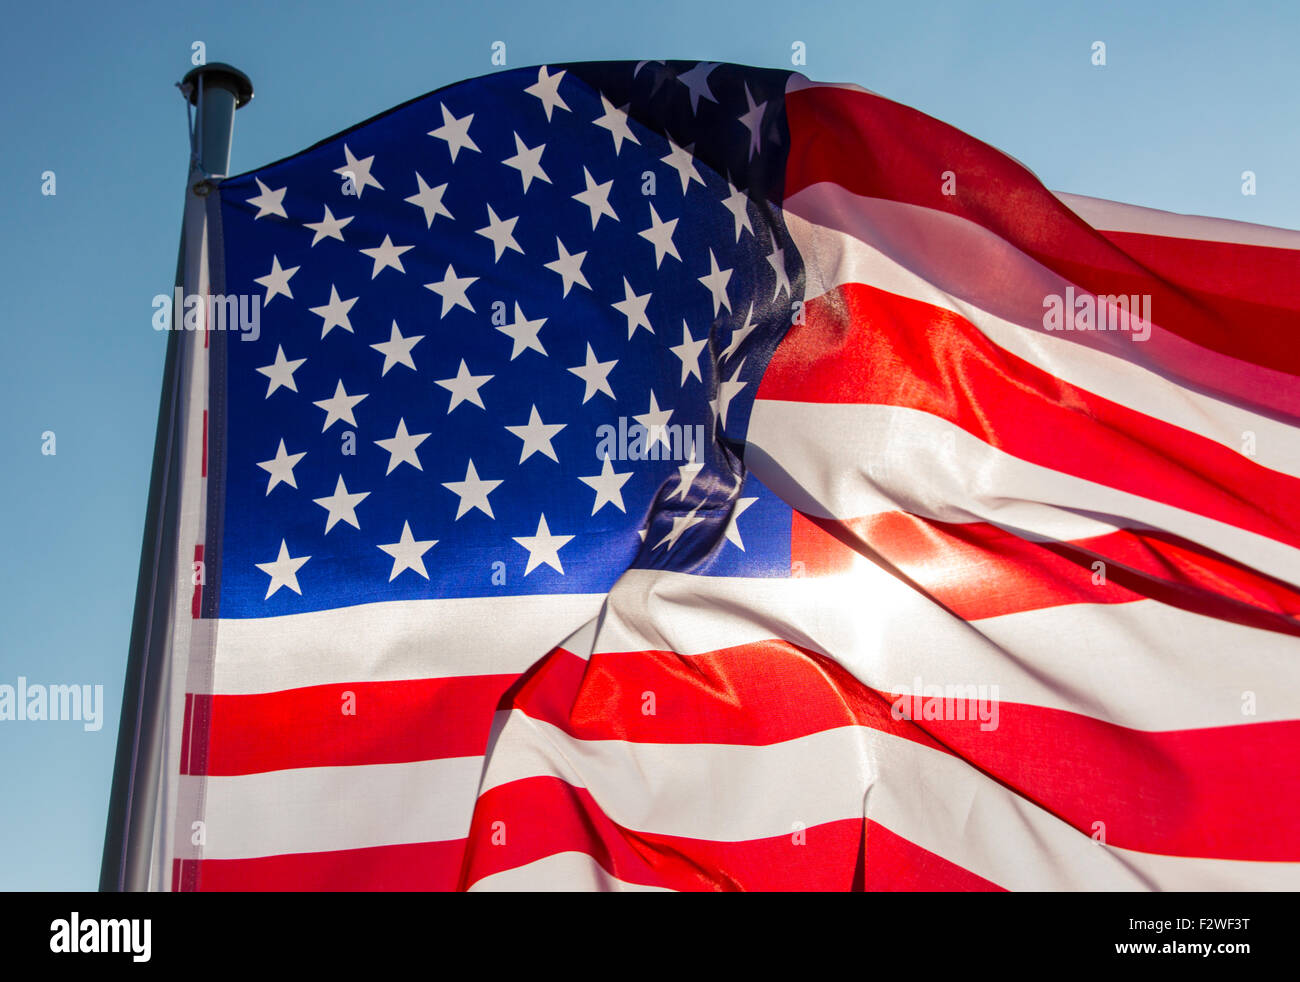 15.04.2015, Berlin, Berlin, Germany - Flag of the United States of America waving in the wind. 0MK150415D082CAROEX.JPG - Stock Image